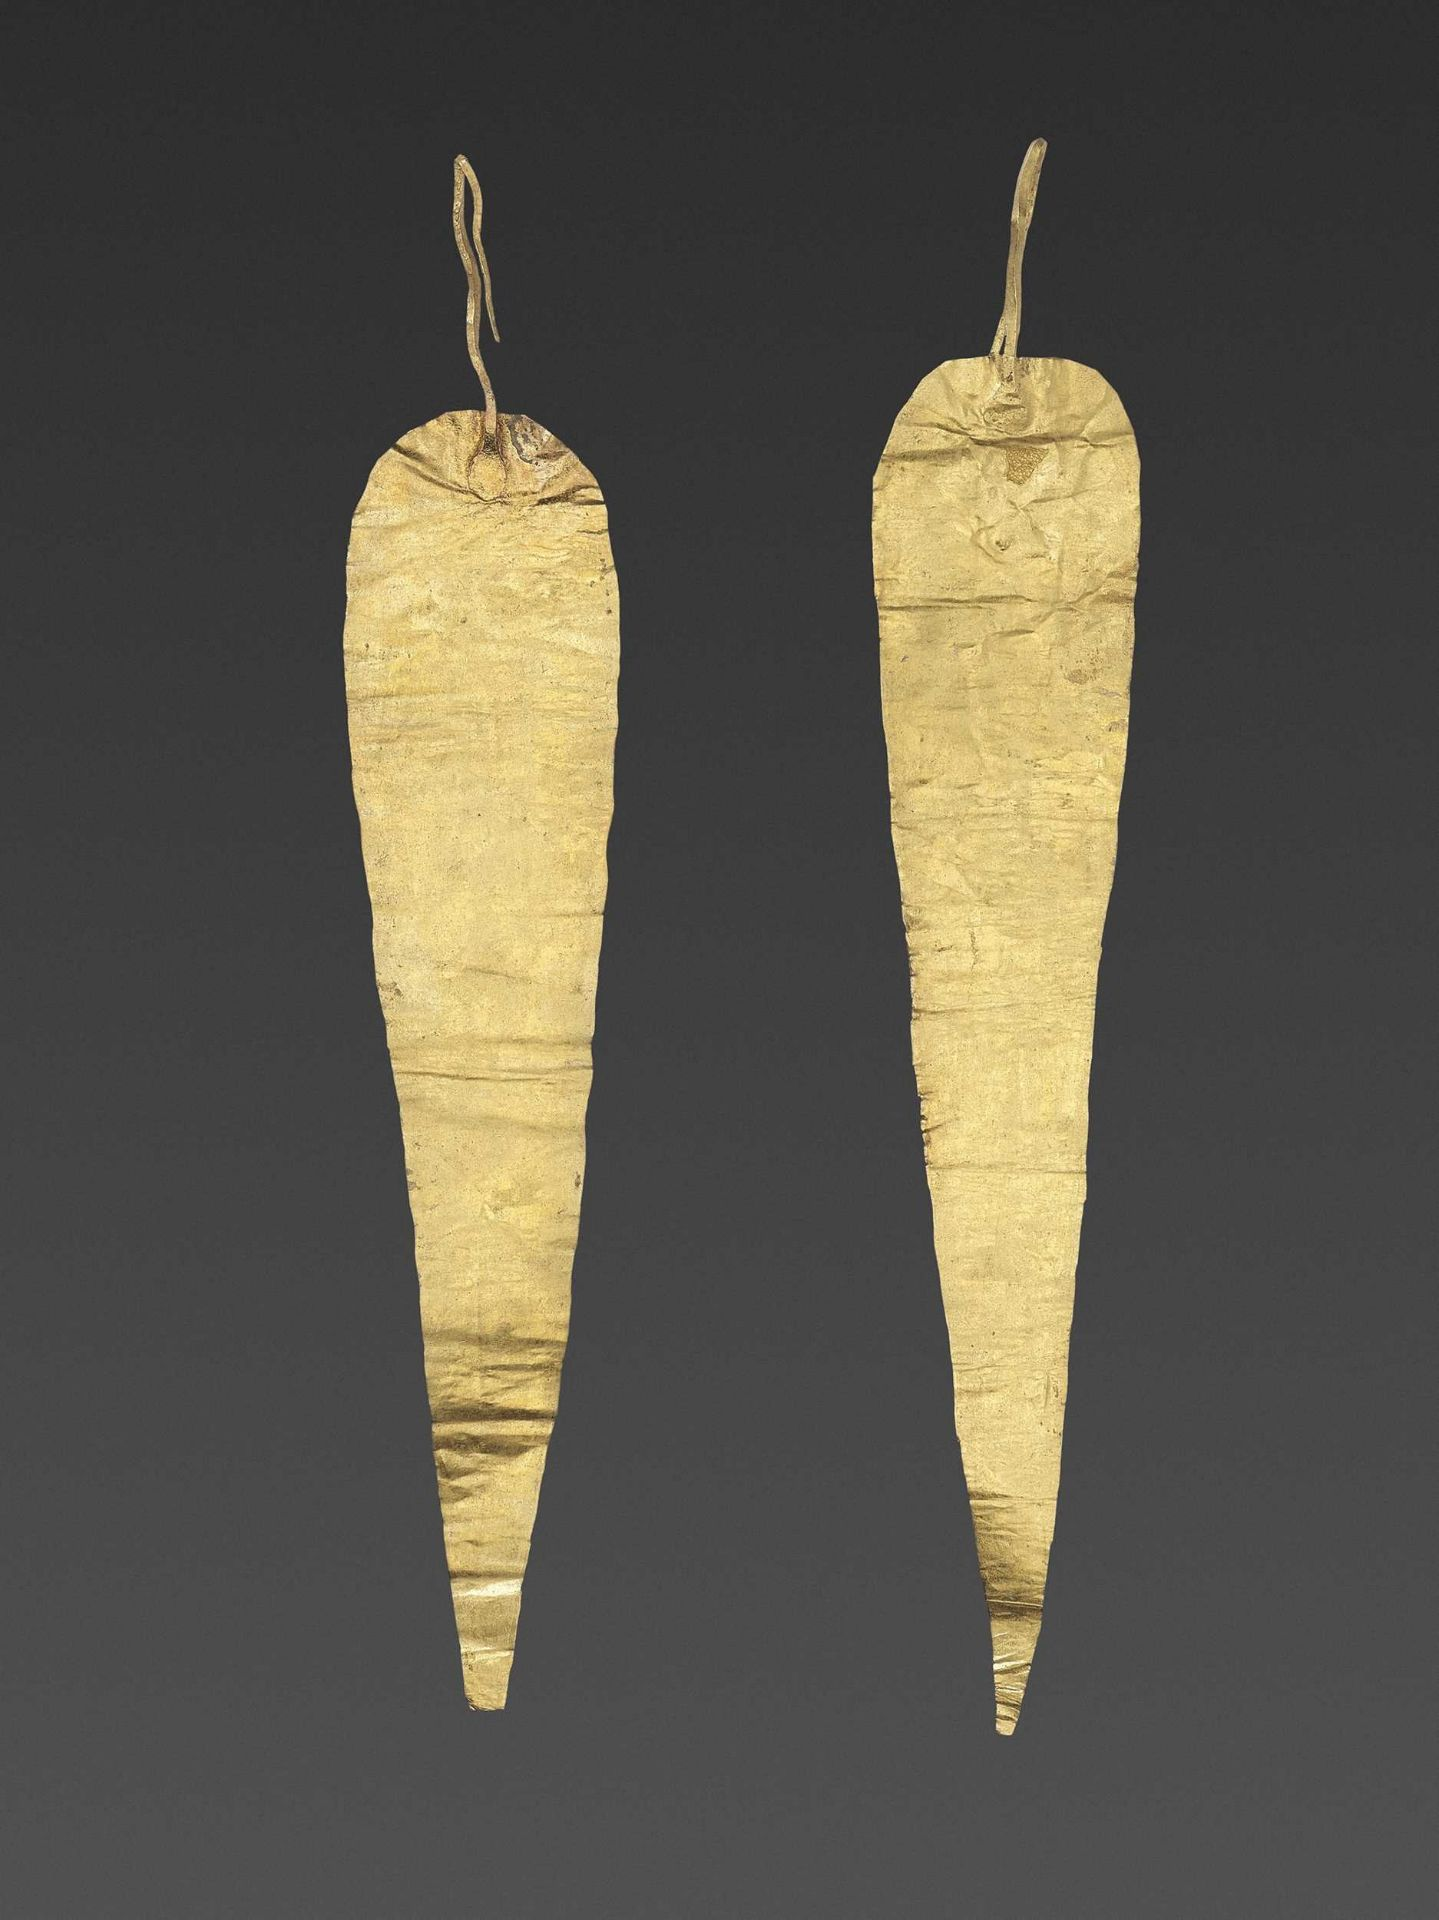 A PAIR OF BACTRIAN GOLD HAIR ORNAMMENTS - Bild 2 aus 4